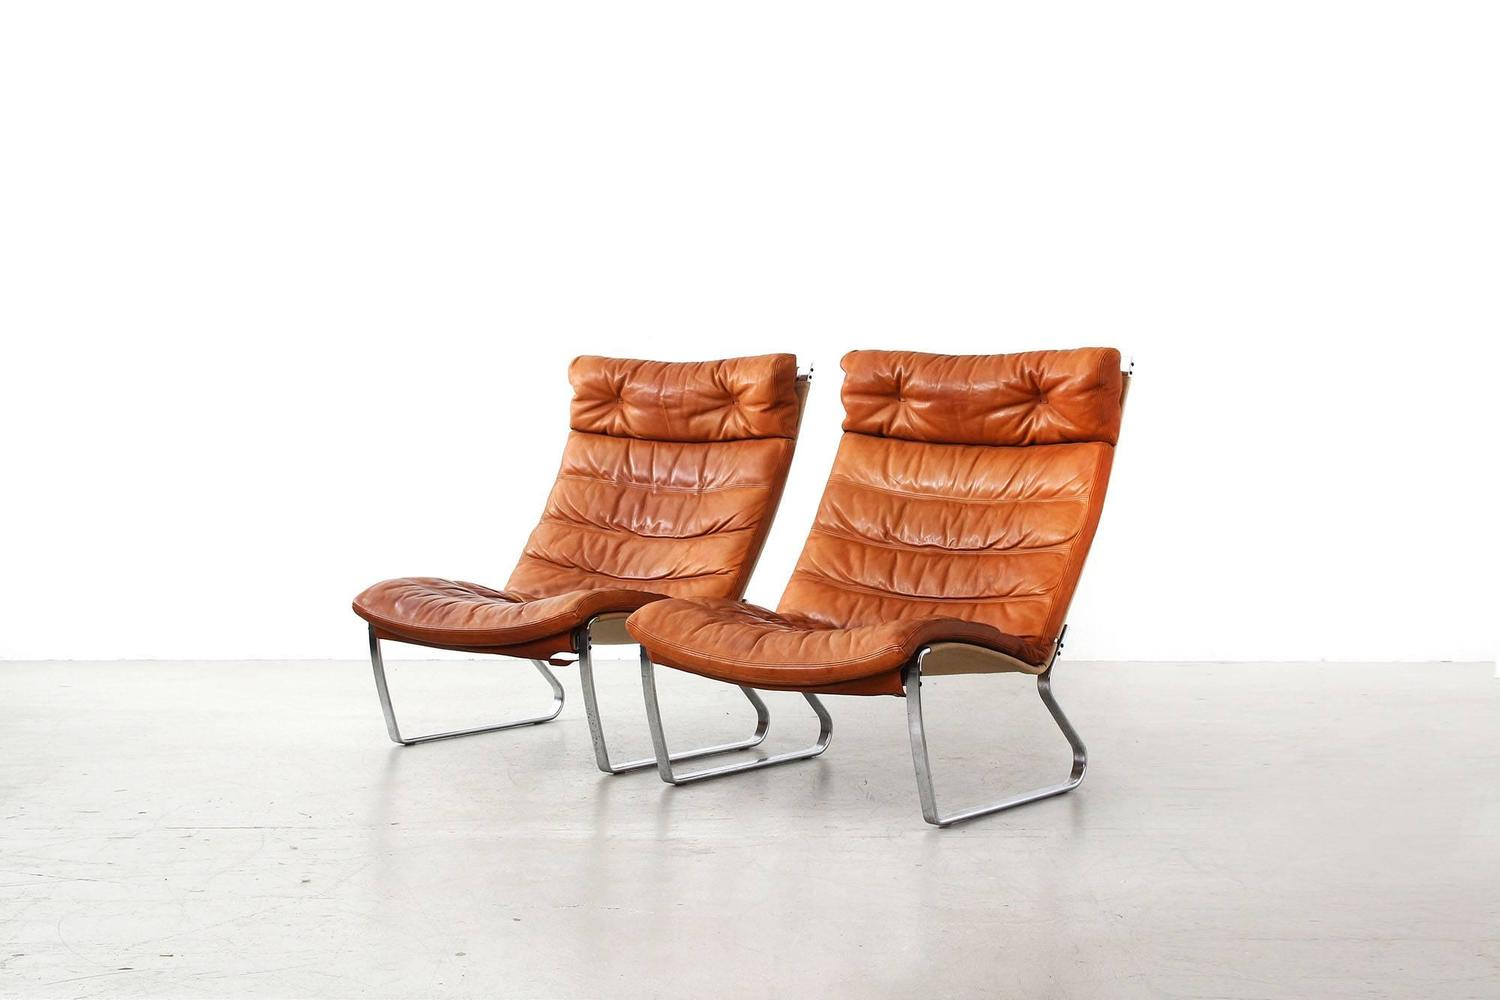 Lounge chairs by j rgen kastholm for kill international for Lounge chair kopie